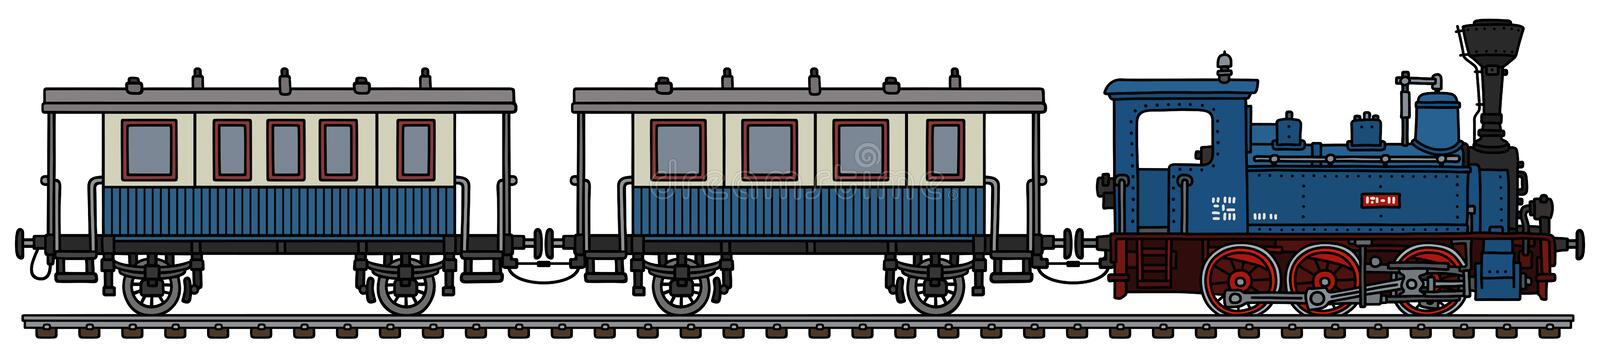 The vintage blue personal steam train vector illustration